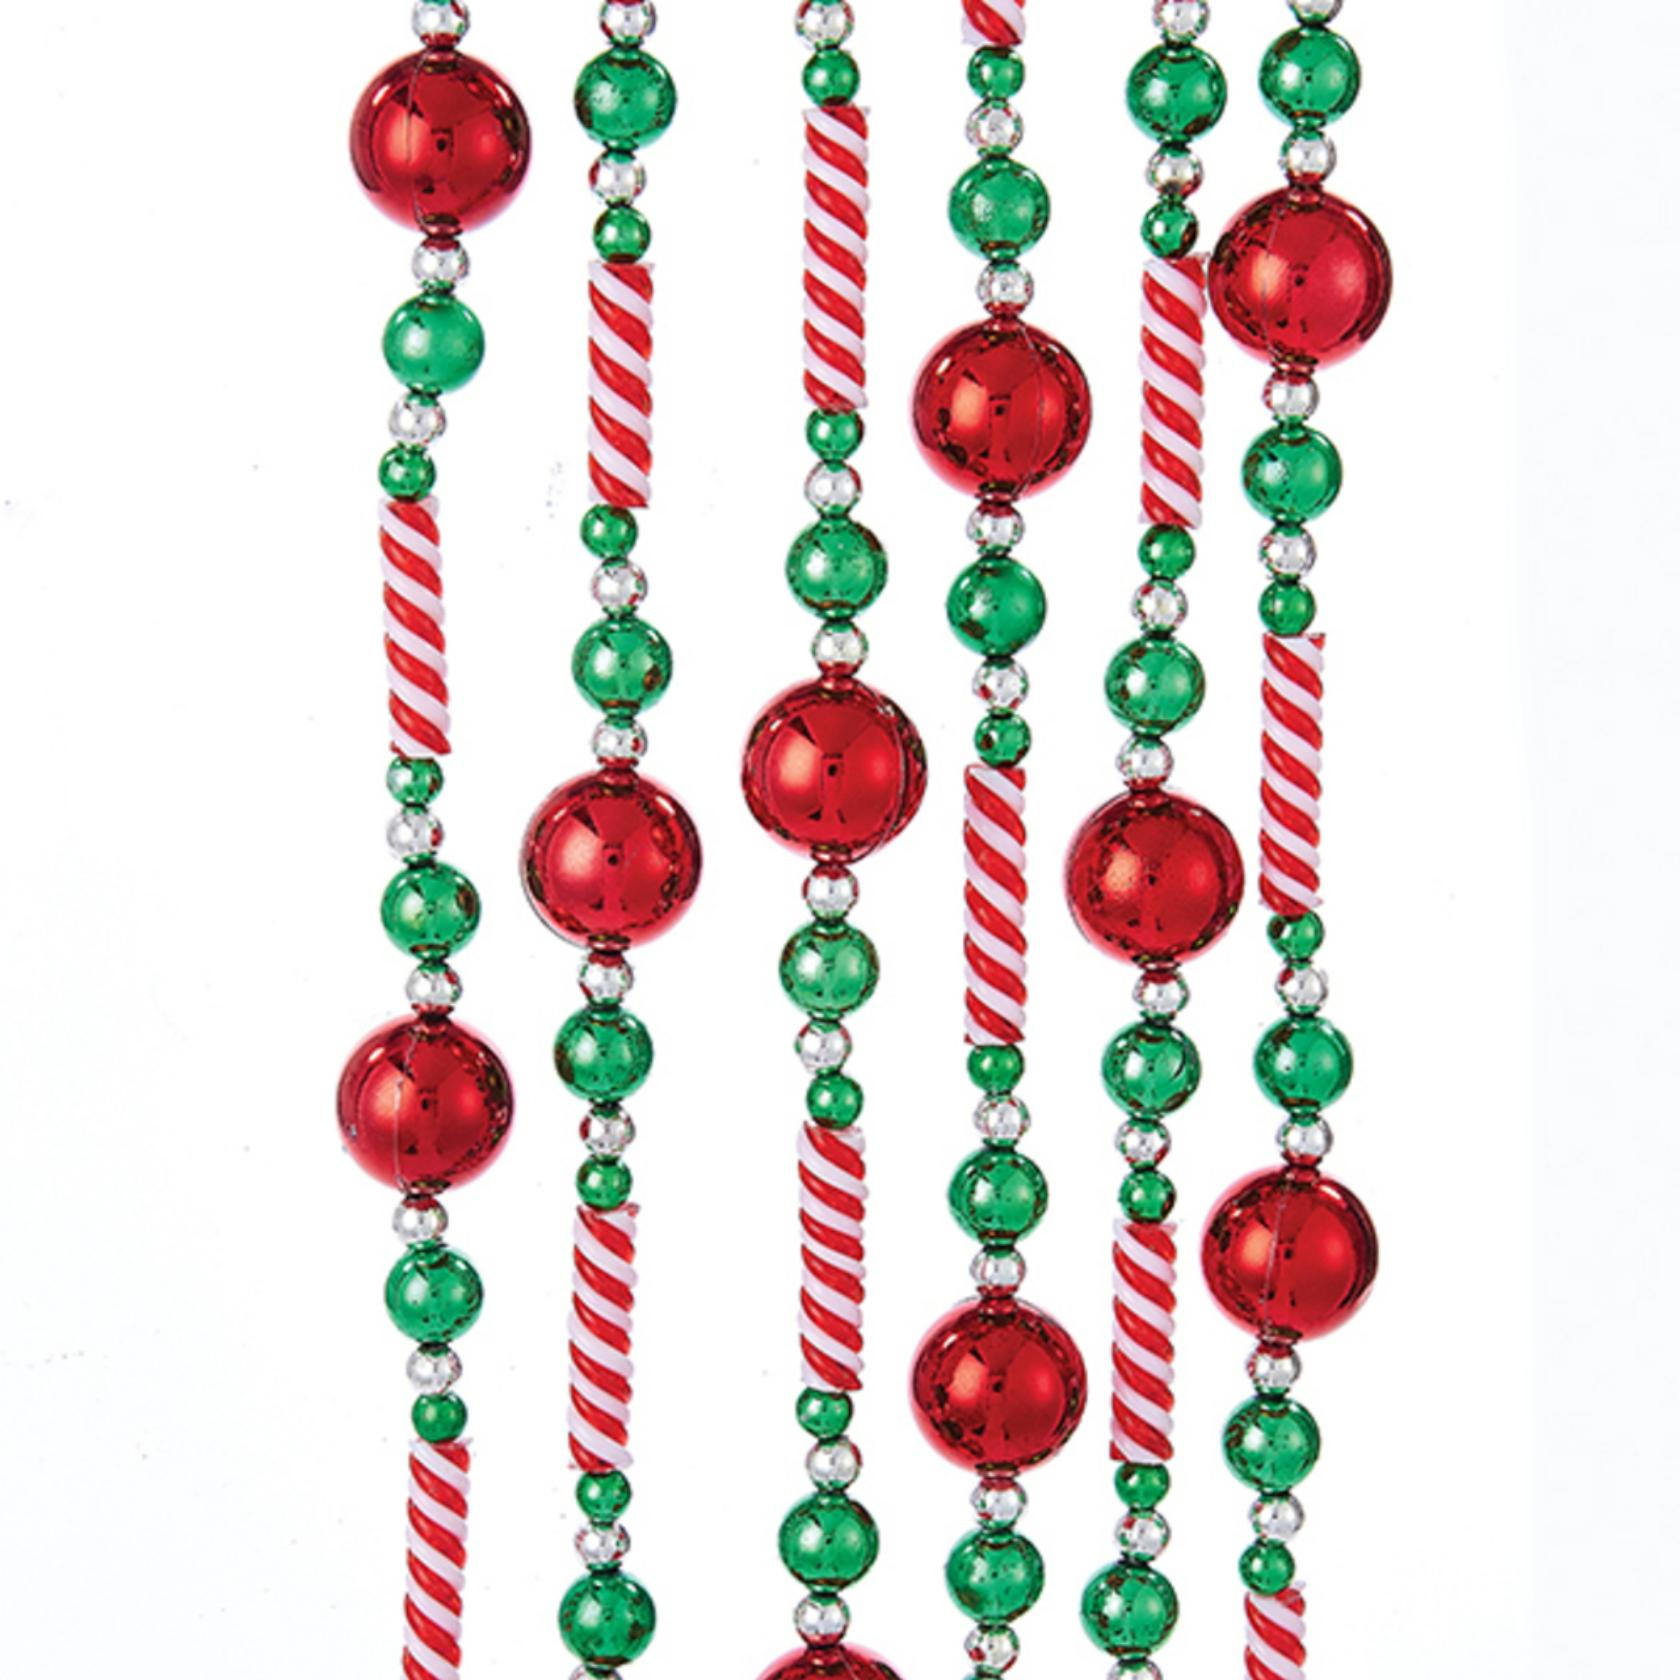 Candy Bead Garland